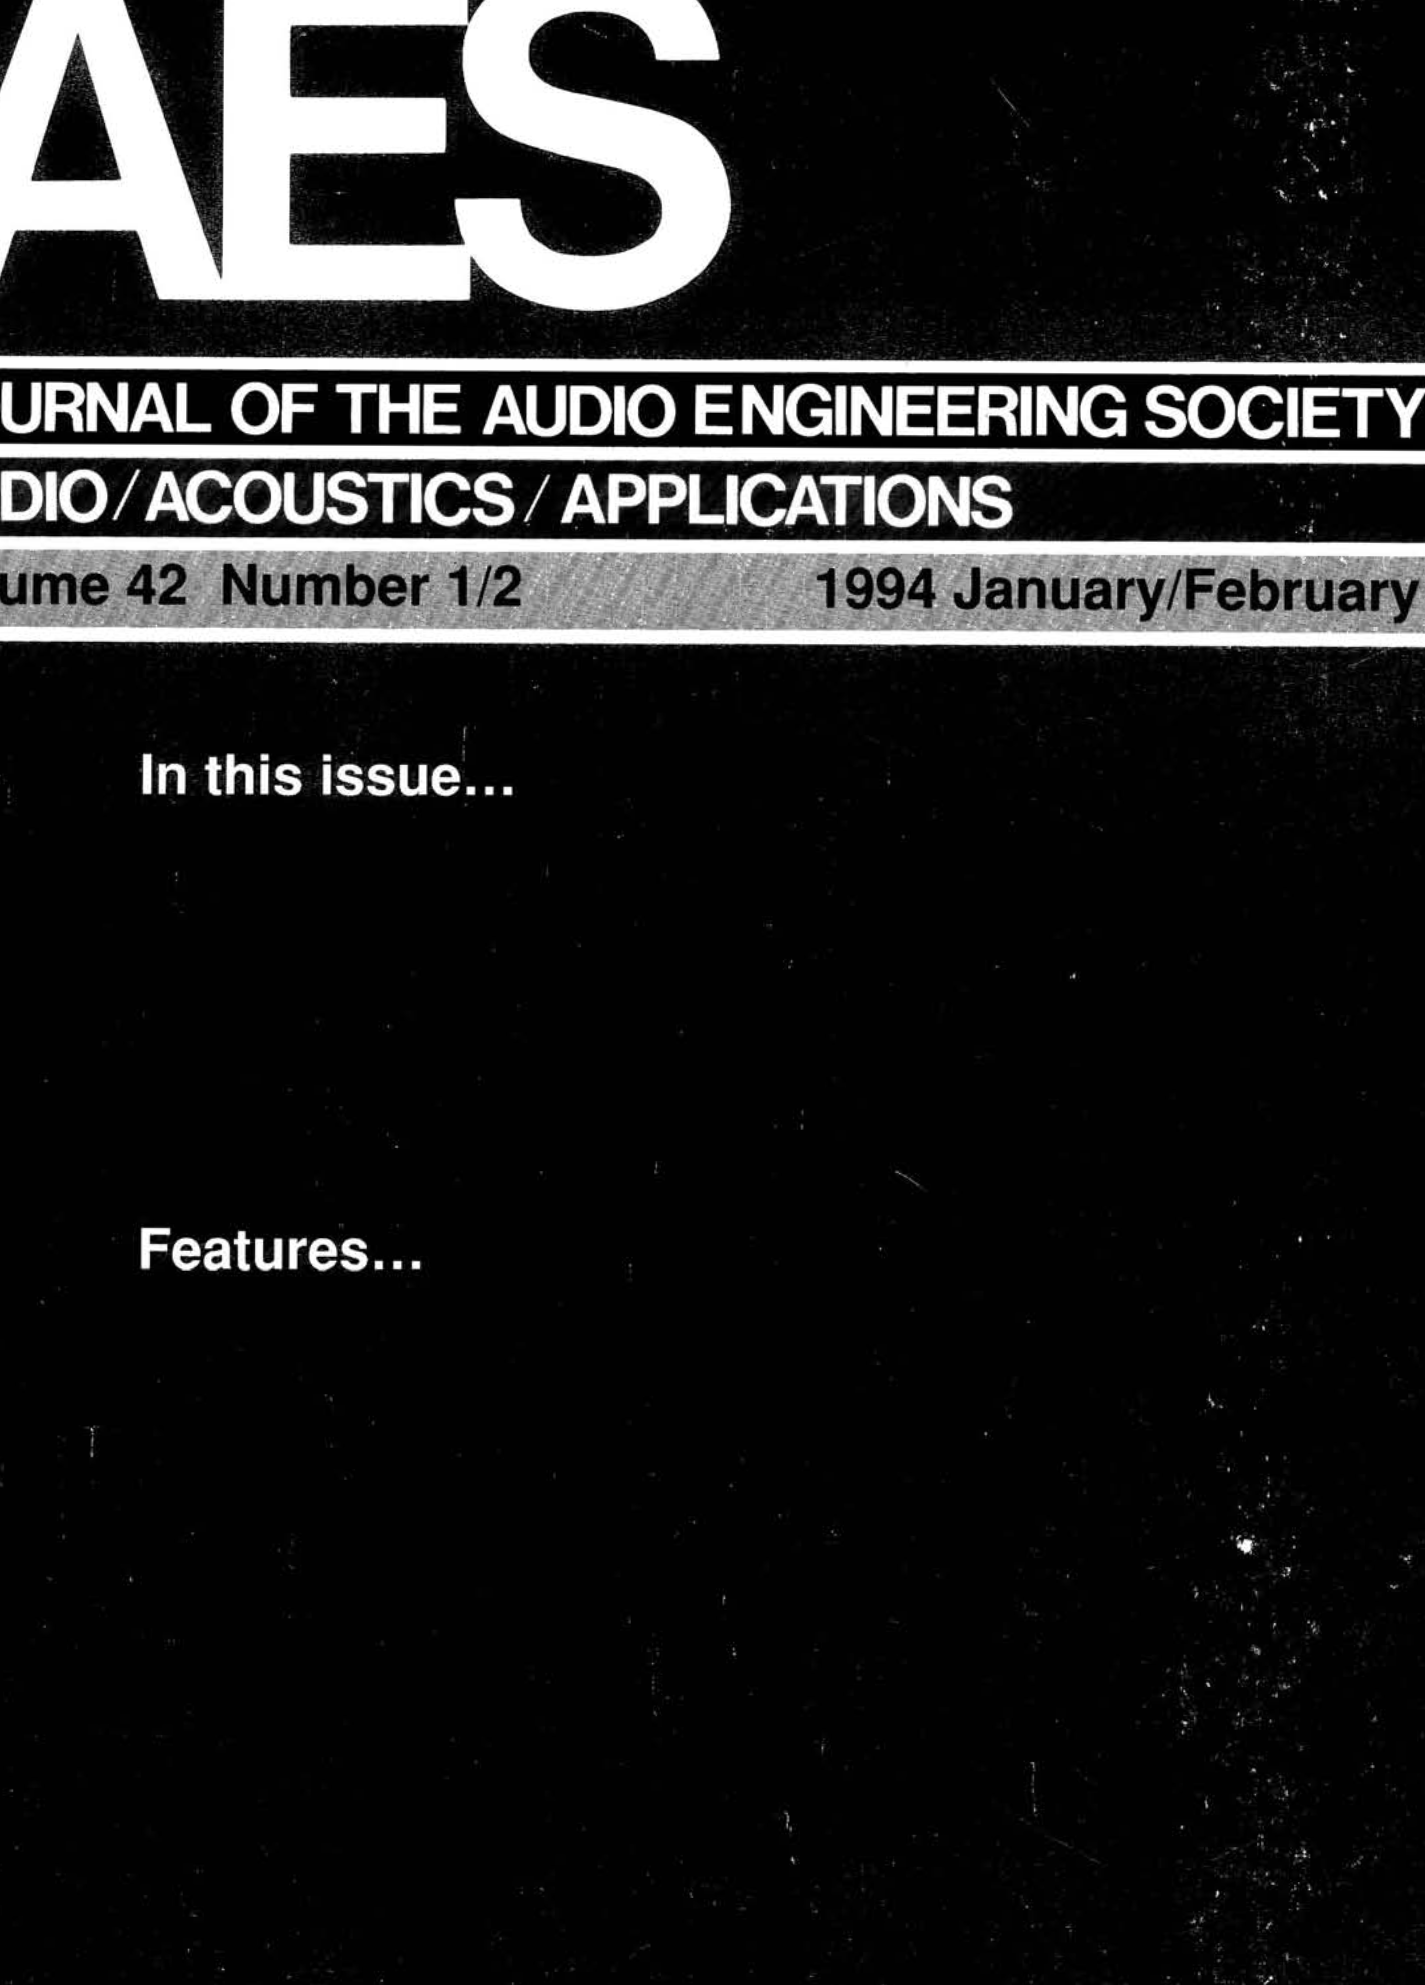 Aes e library complete journal volume 42 issue 12 malvernweather Choice Image